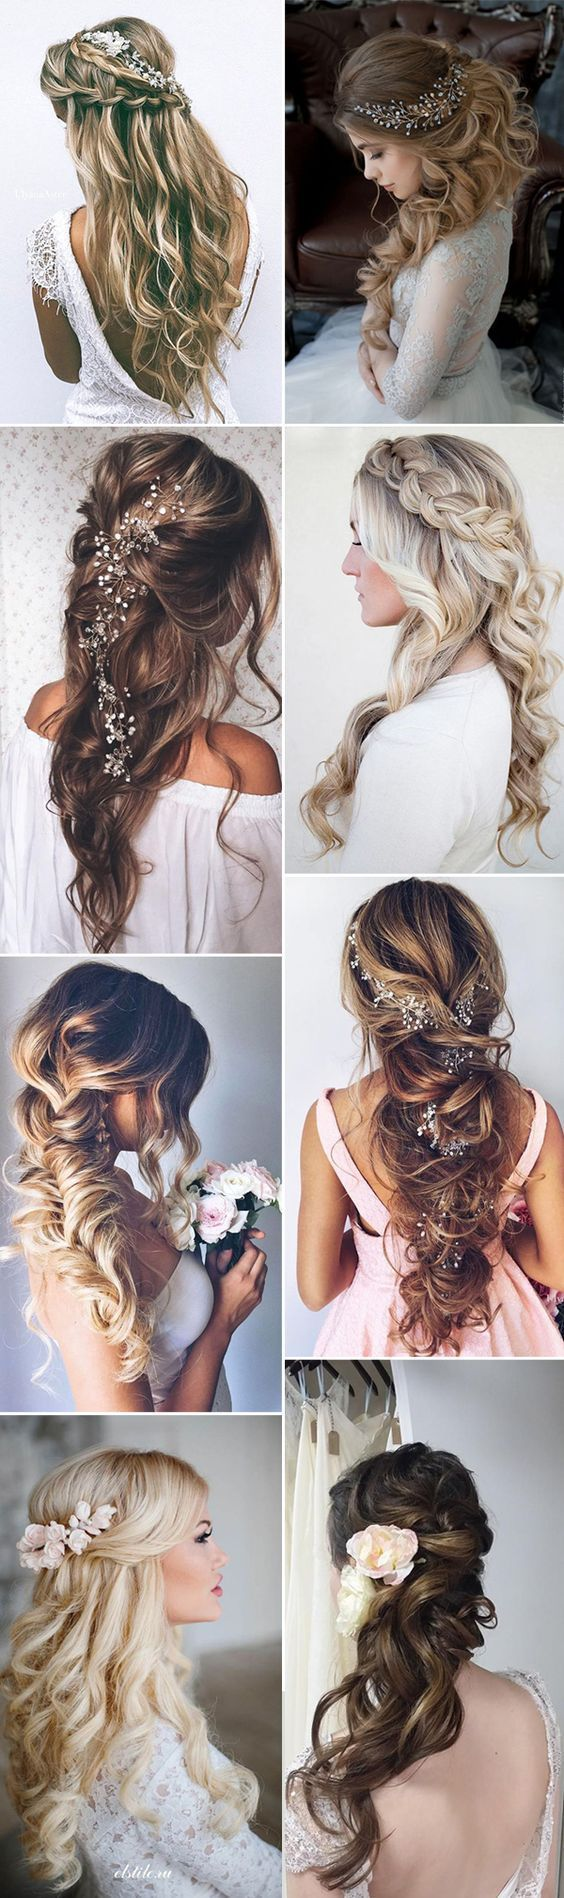 2017 wedding long hairstyles for brides…